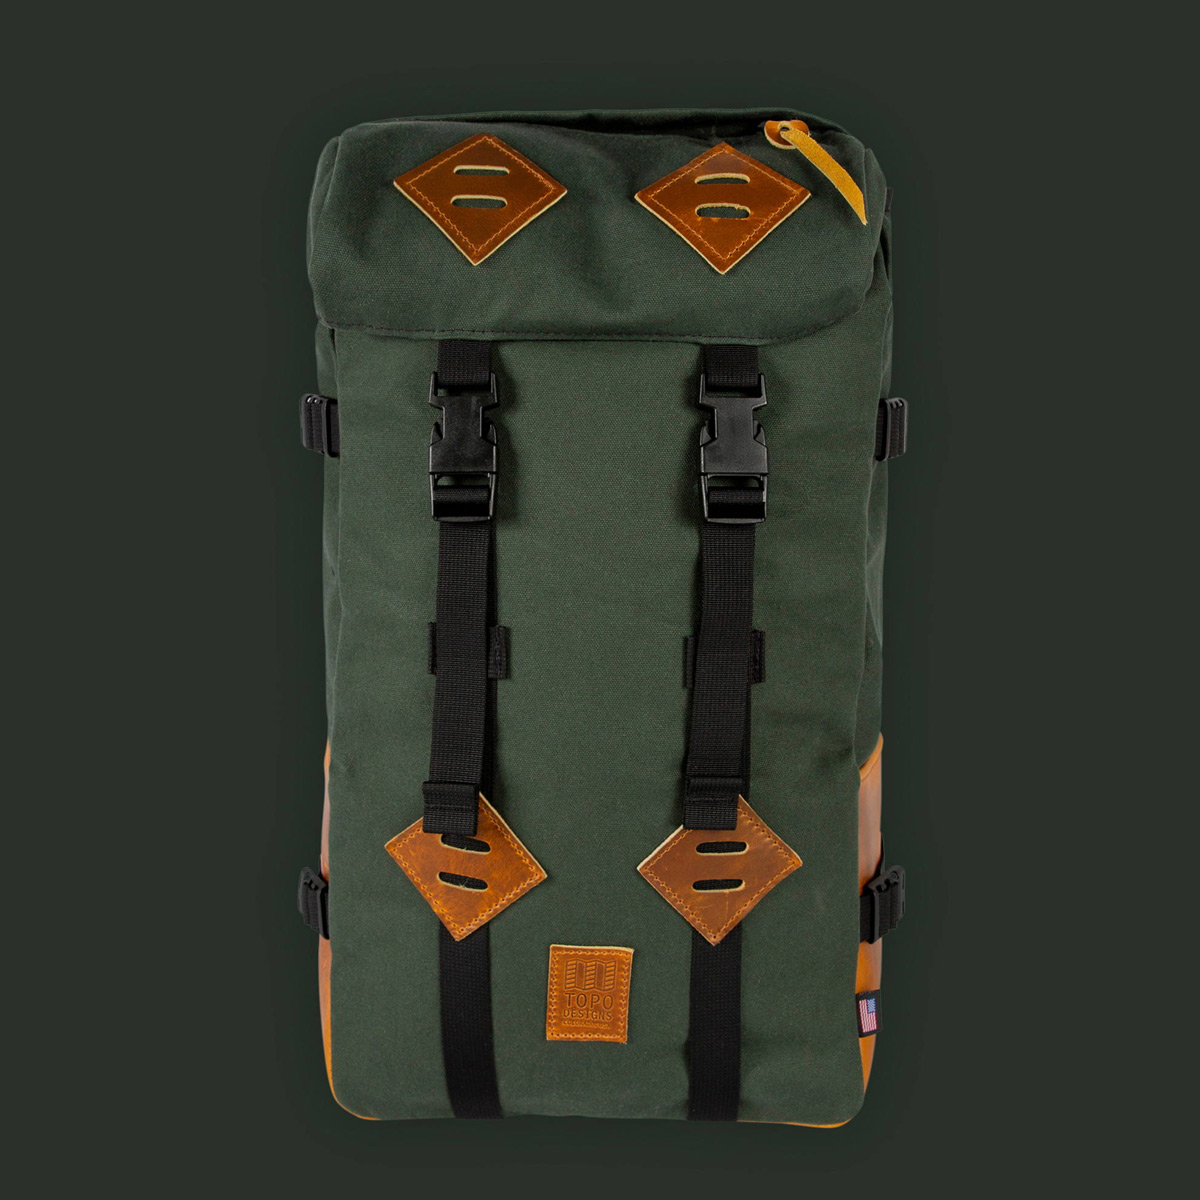 Topo Designs Klettersack Heritage Olive Canvas/Brown Leather, classic backpack for men and women